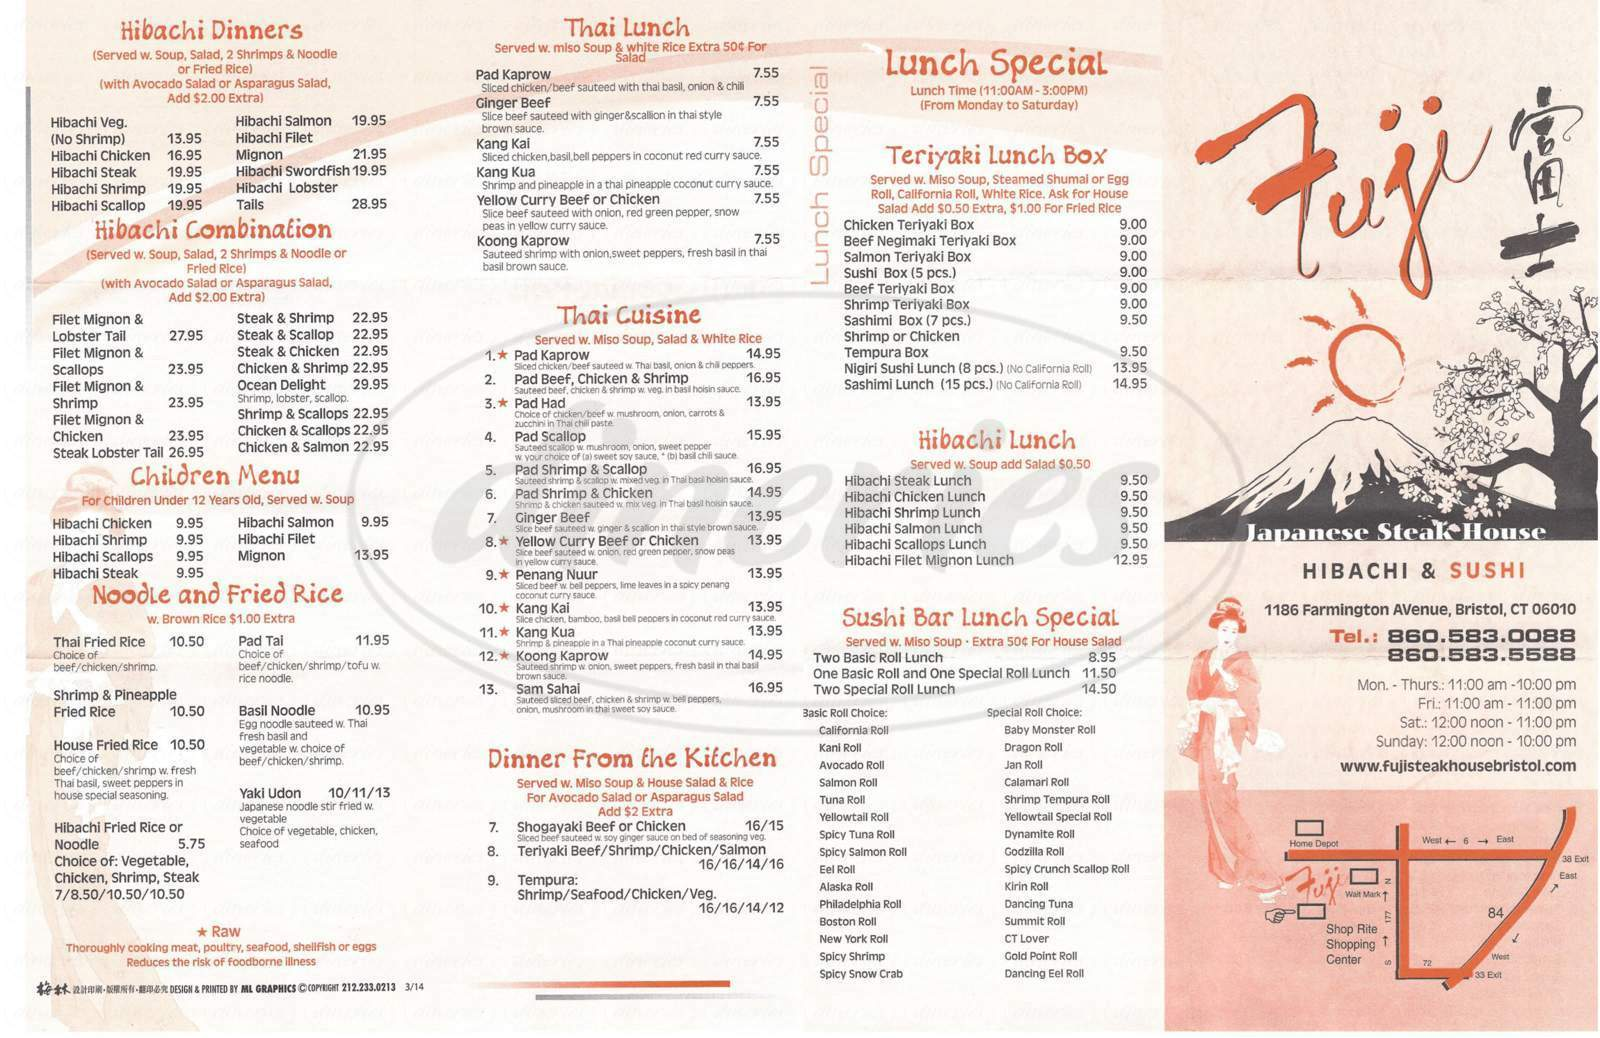 menu for Fuji Japanese Steakhouse